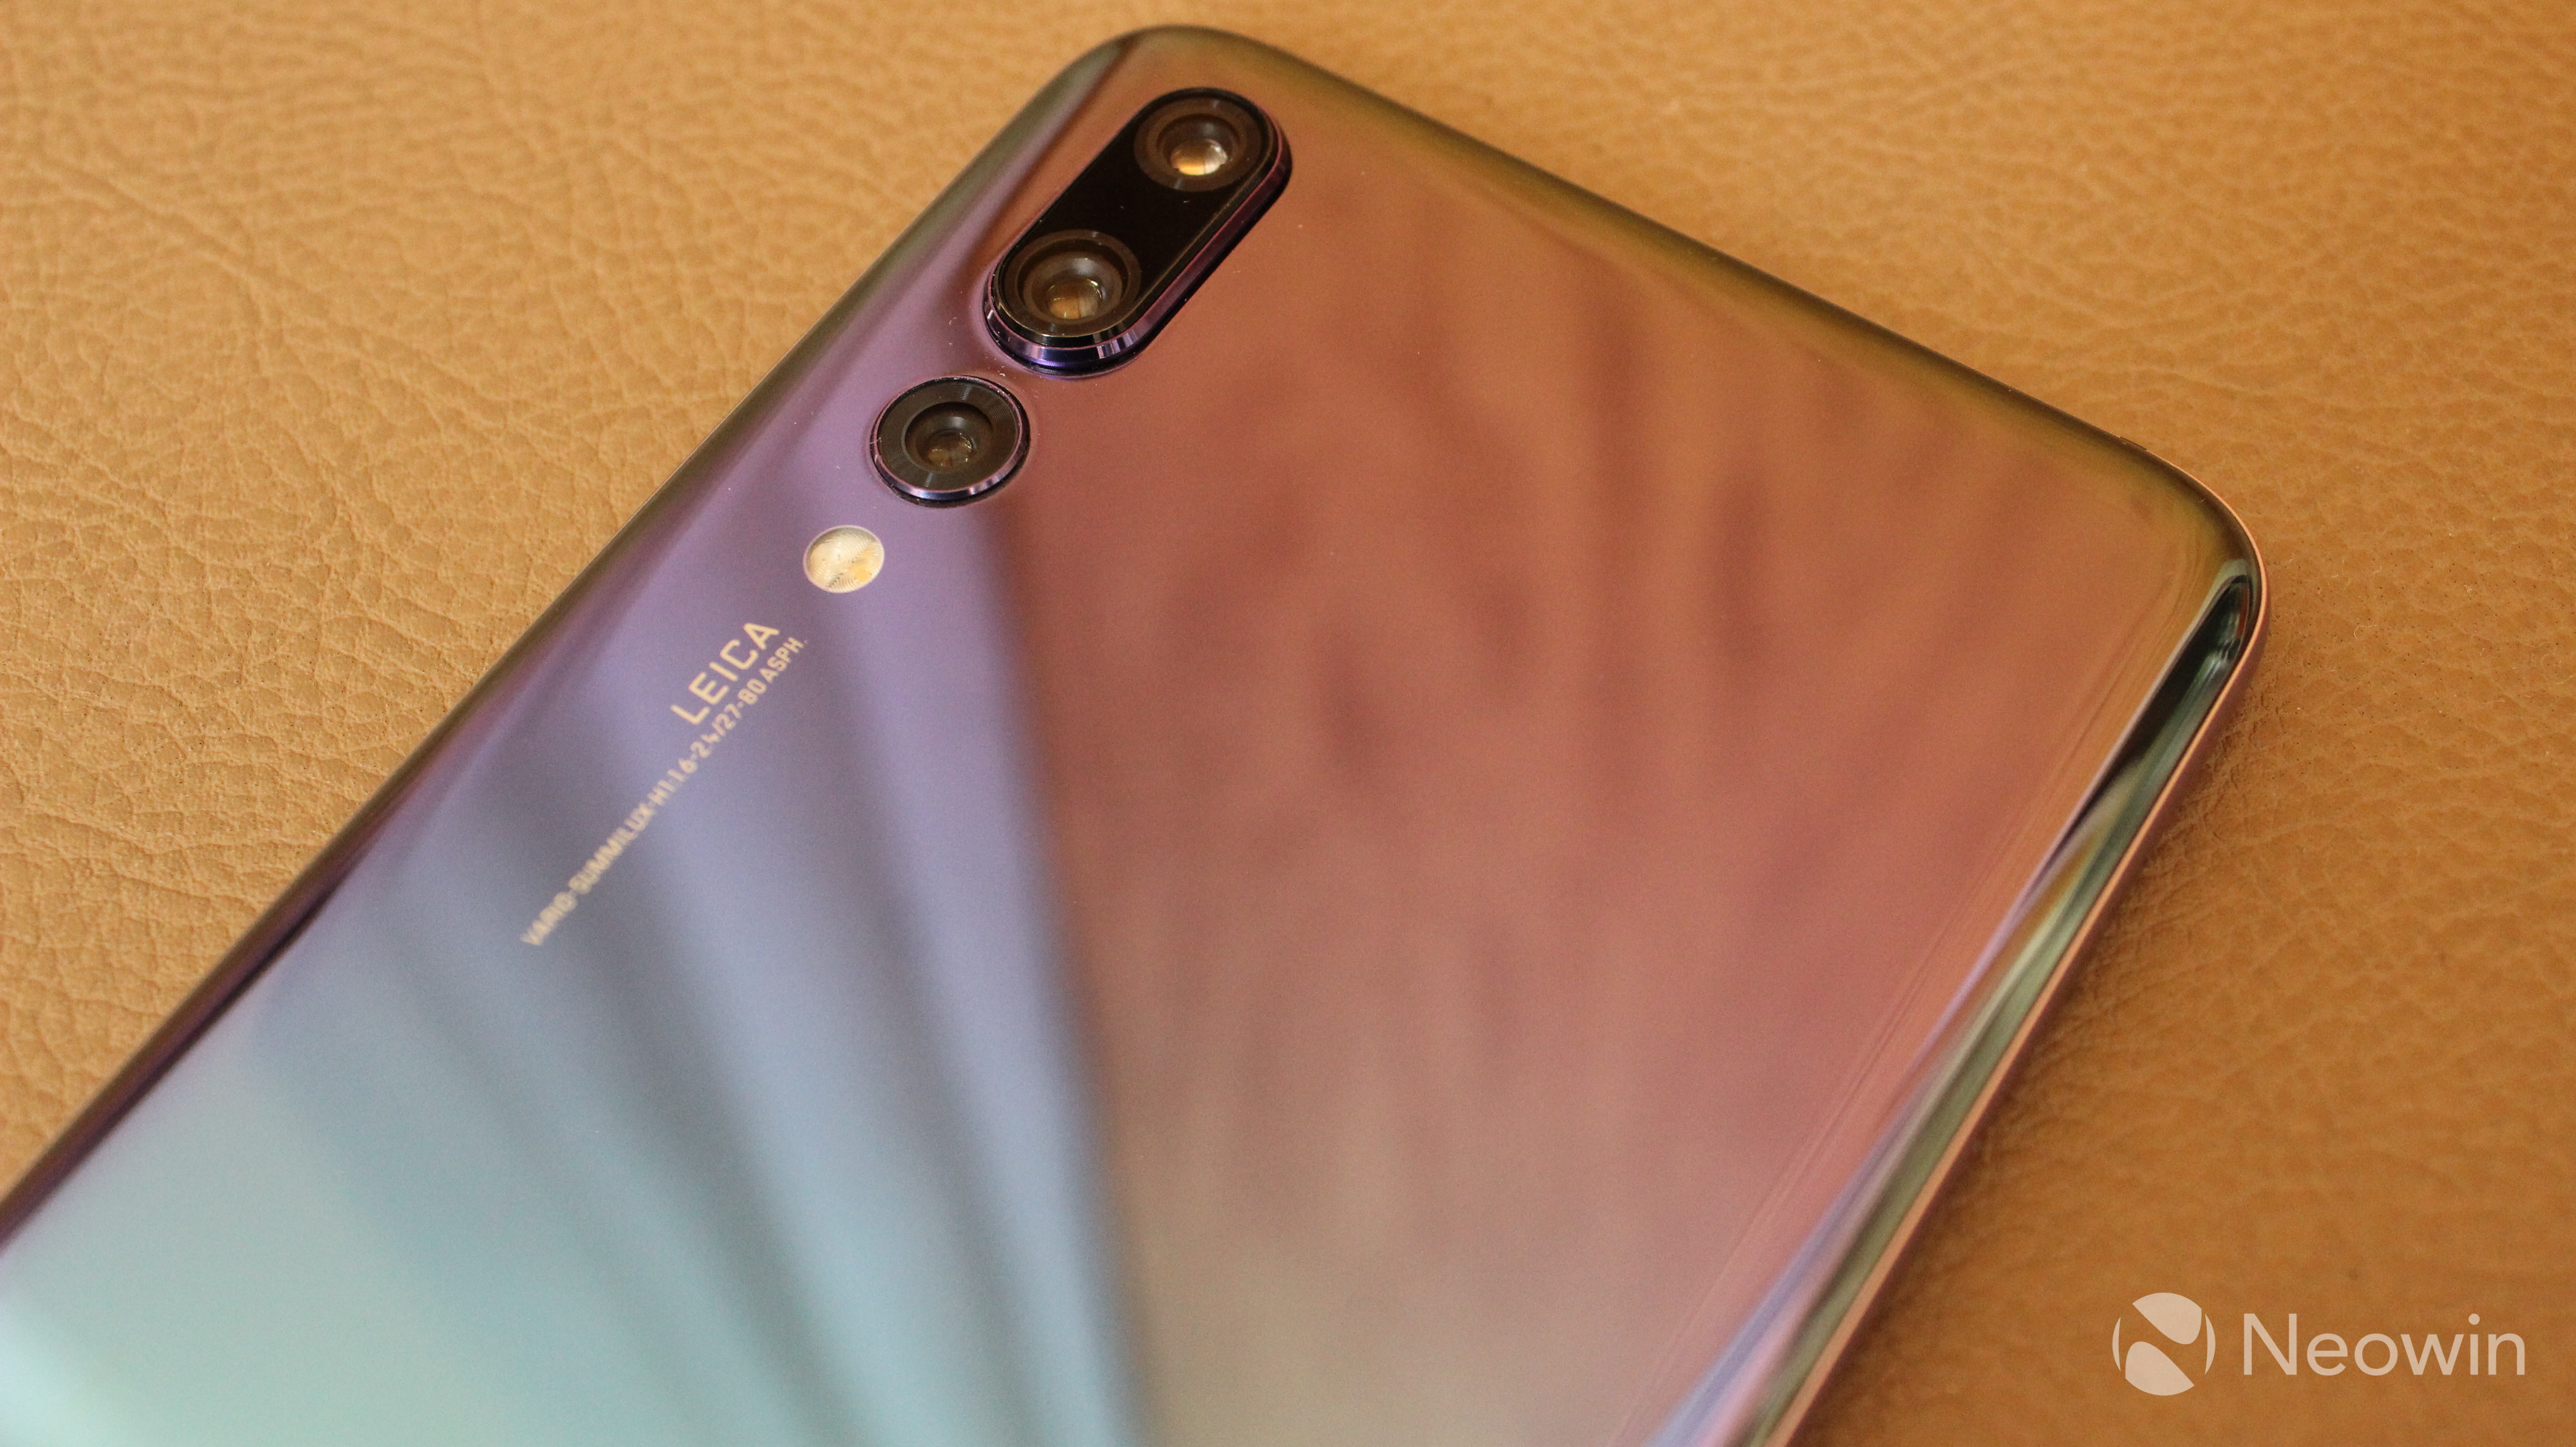 Hands on: Huawei's new P20 and P20 Pro have the camera tech